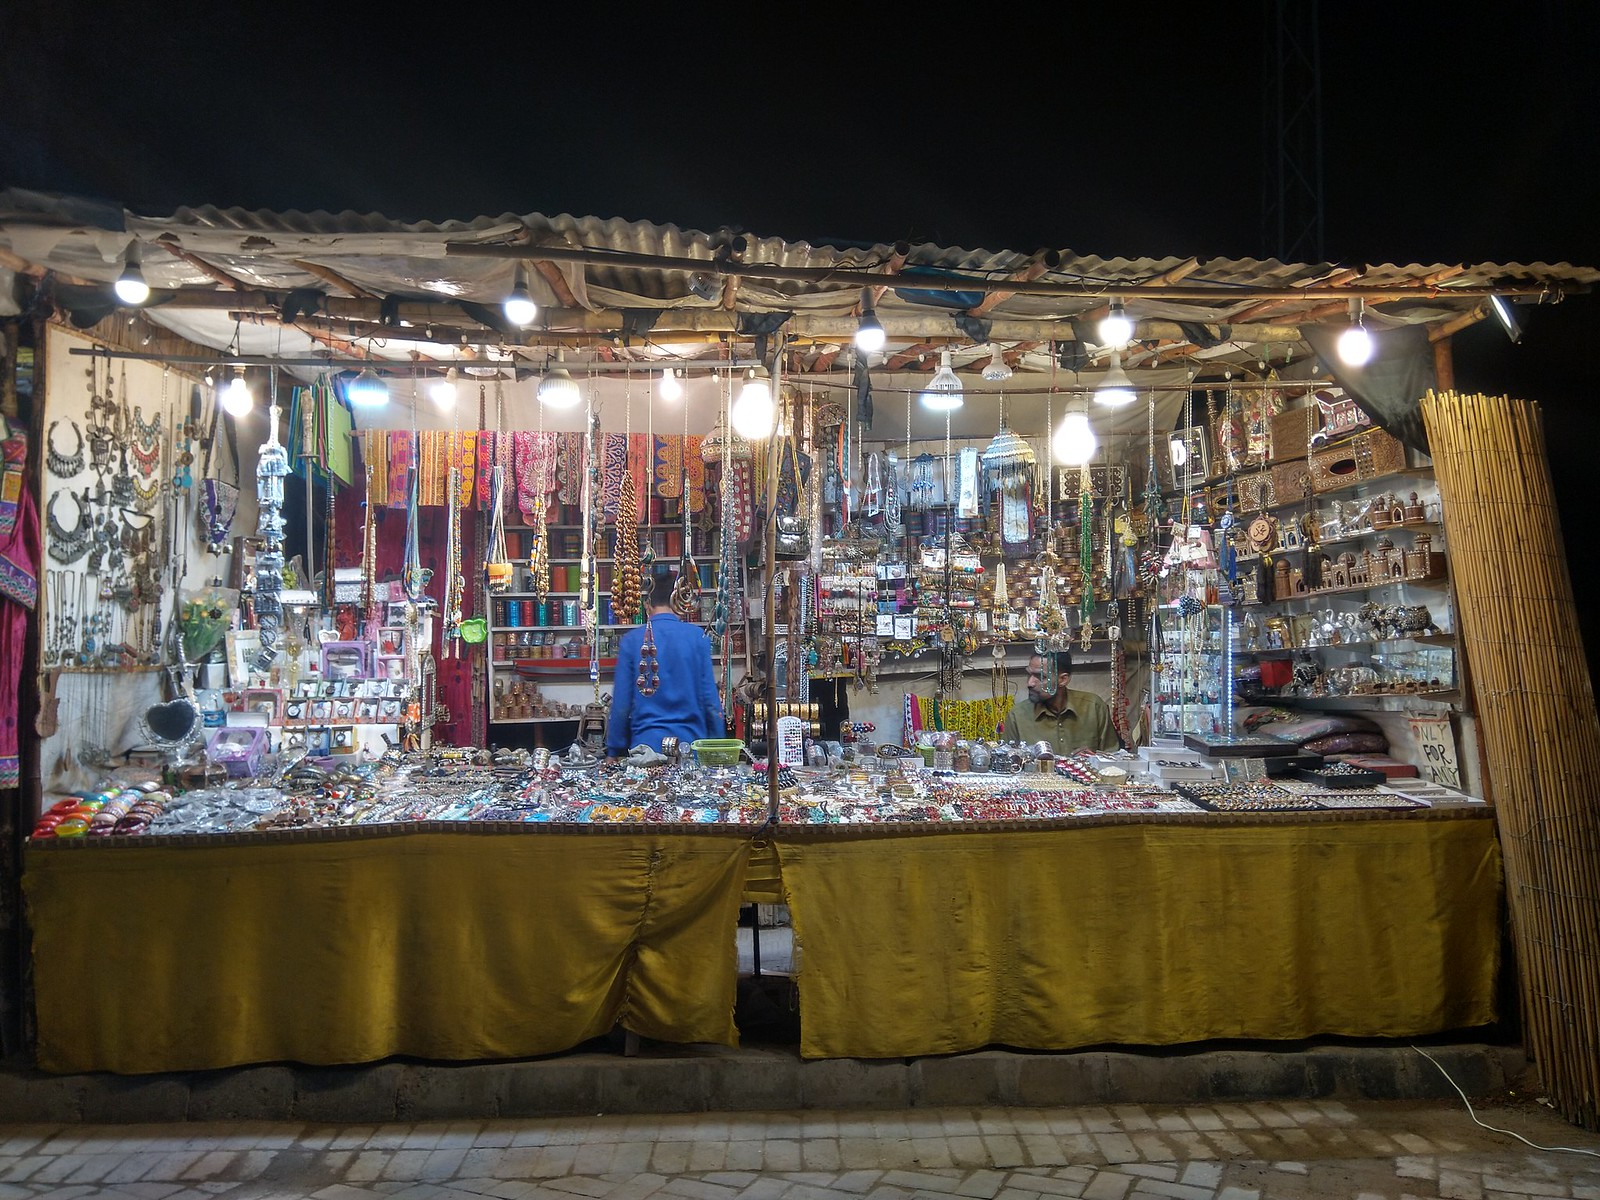 Shop Picture at night with HDR Mode on Nokia 6.1 Plus